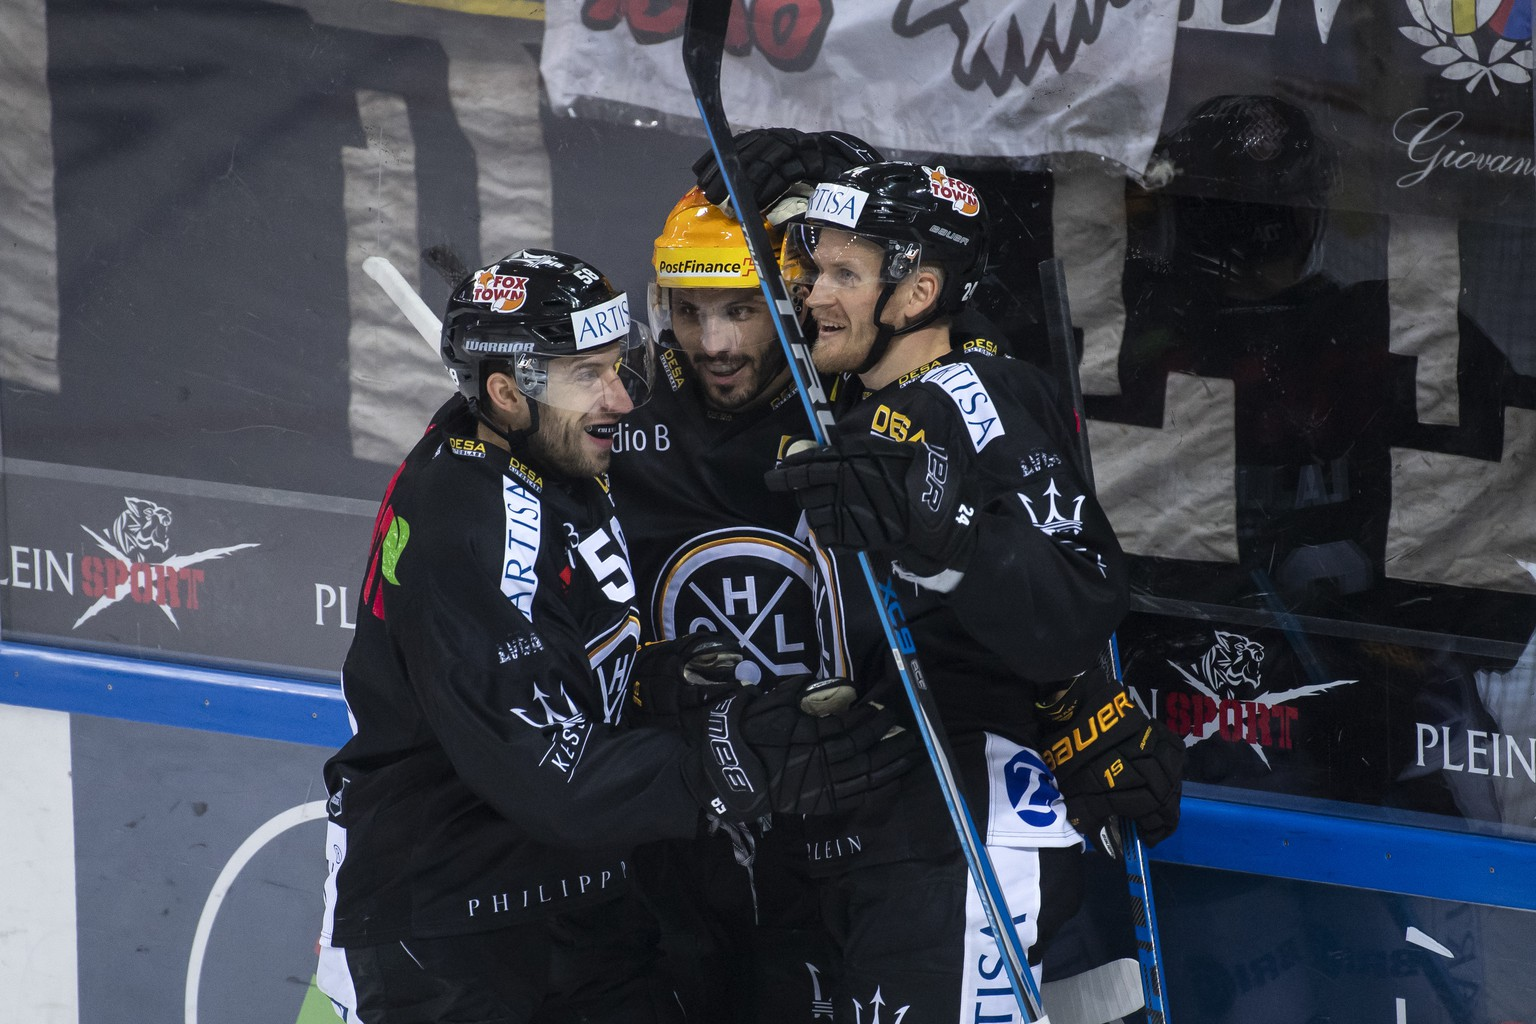 From left, Lugano's player Romain Loeffel, Lugano's player Maxim Lapierre and Lugano's player Jani Lajunen, celebrate 1-0 goal, during the preliminary round game of National League Swiss Championship 2018/19 between Switzerland's HC Lugano and SCRJ Lakers, at the ice stadium  Corner Arena in Lugano, Switzerland, Saturday, October 13, 2018. (KEYSTONE/Ti-Press/Pablo Gianinazzi)